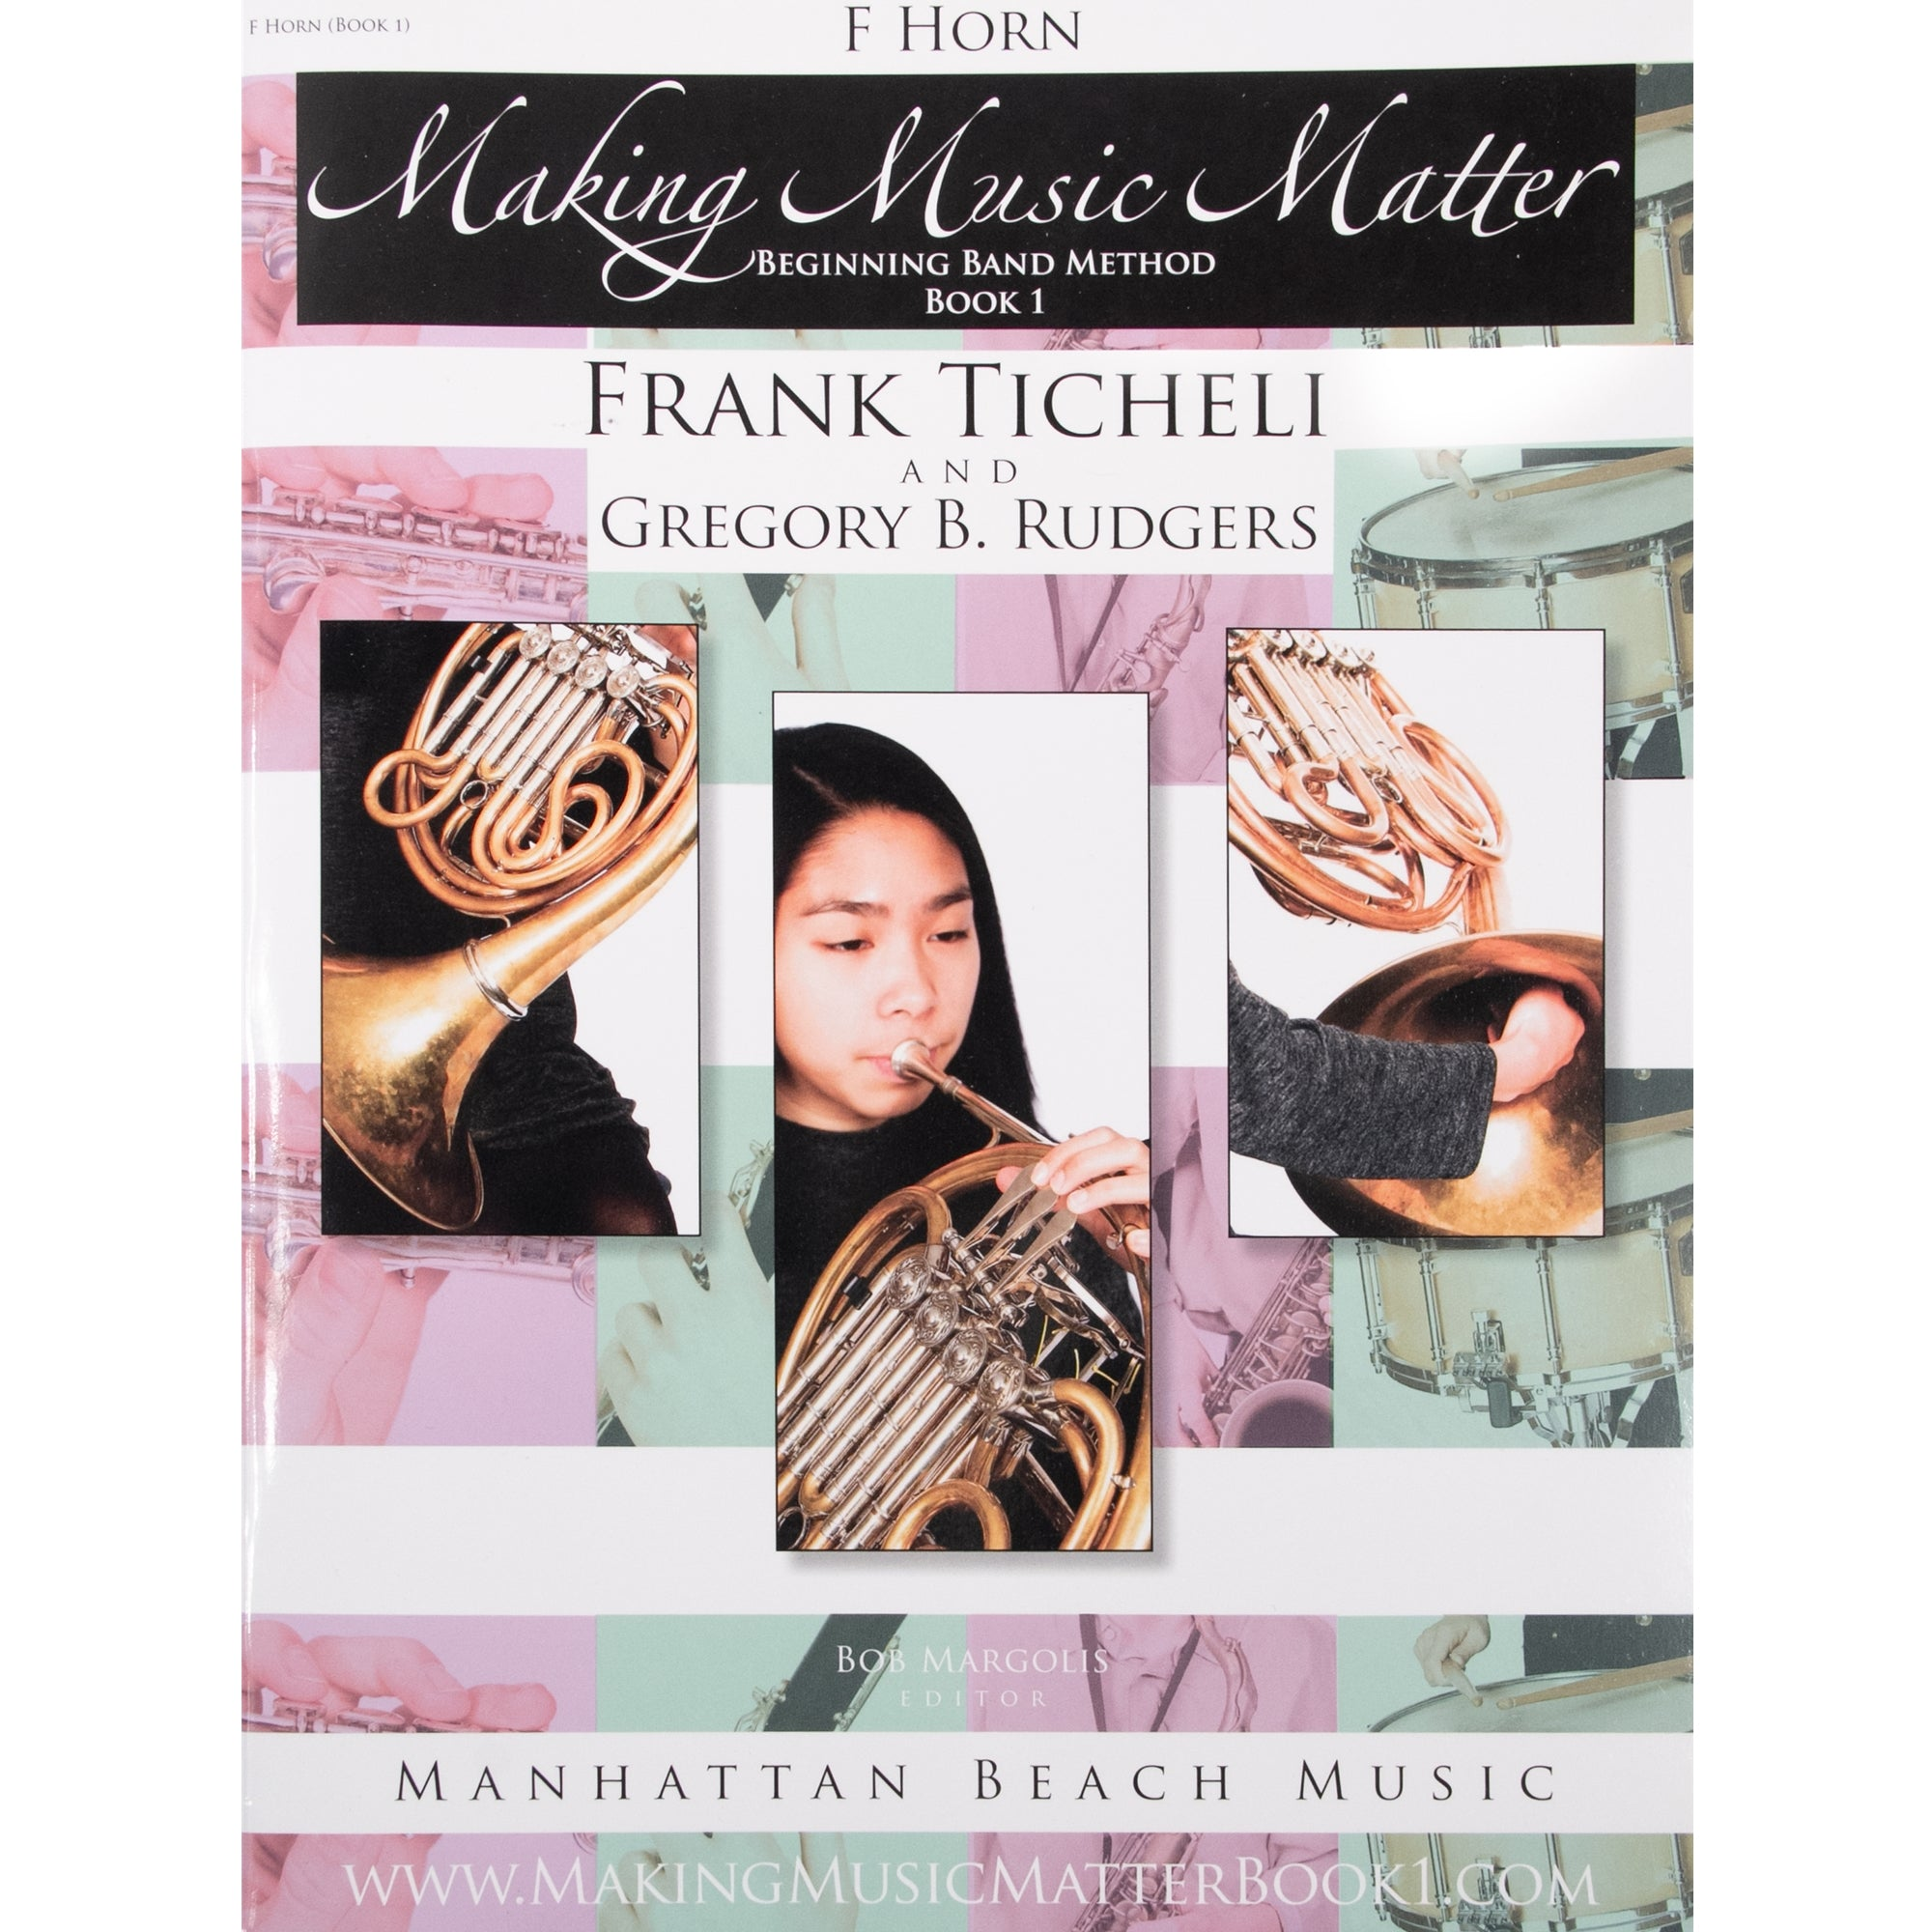 MANHATTAN BEACH 207006 Making Music Matter, F Horn (Book 1)